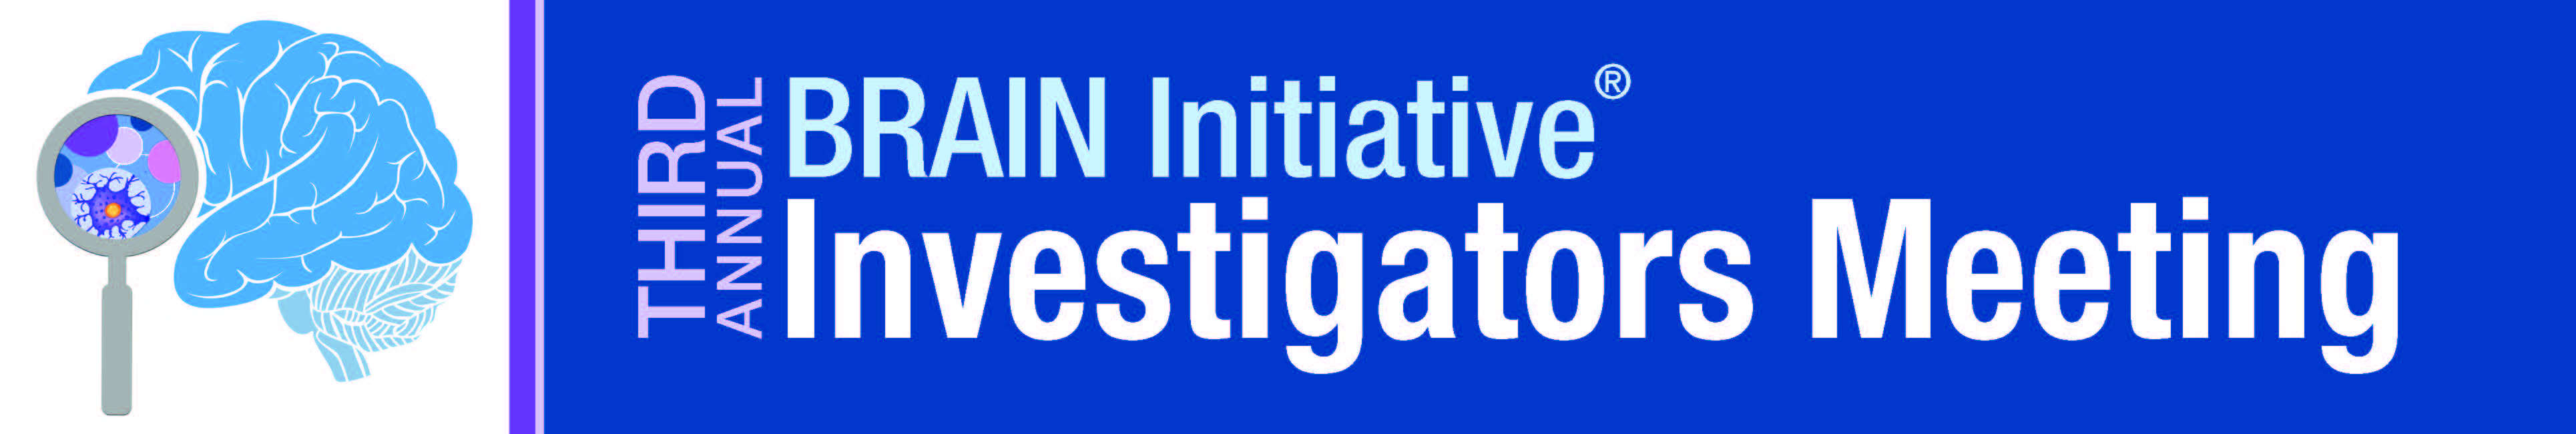 3rd Annual BRAIN Initiative® Investigators Meeting